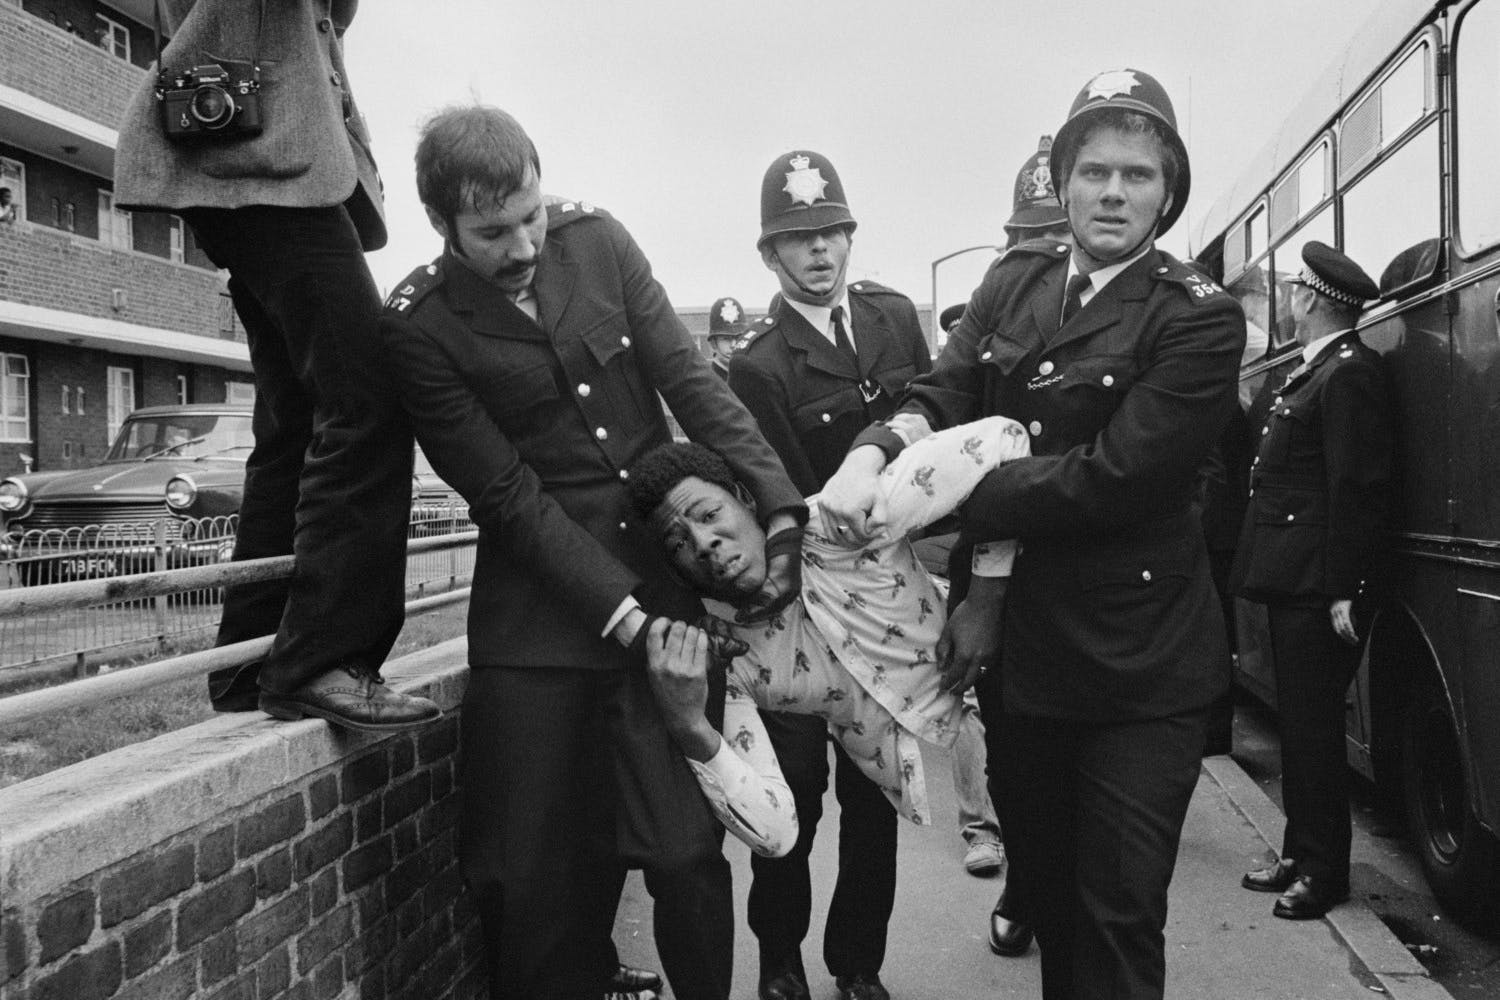 Chris Steele-Perkins Rioters held back by police at National Front Demo. London. England. GB. 1977.